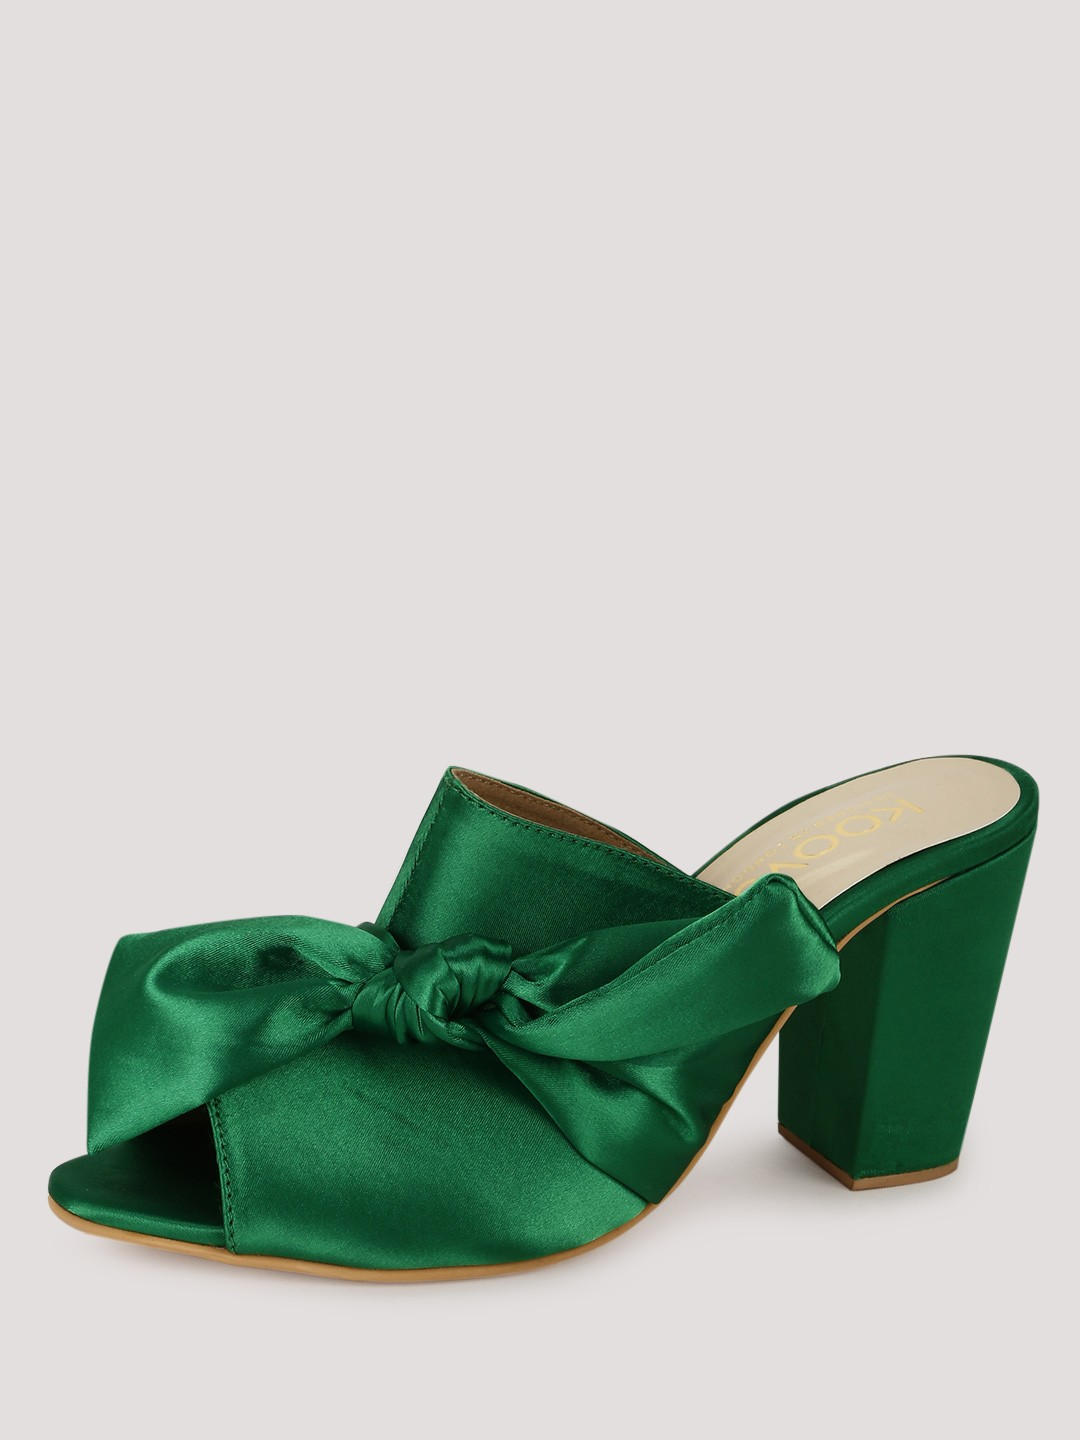 Buy Koovs Knotted Bow Mules For Women Women S Green